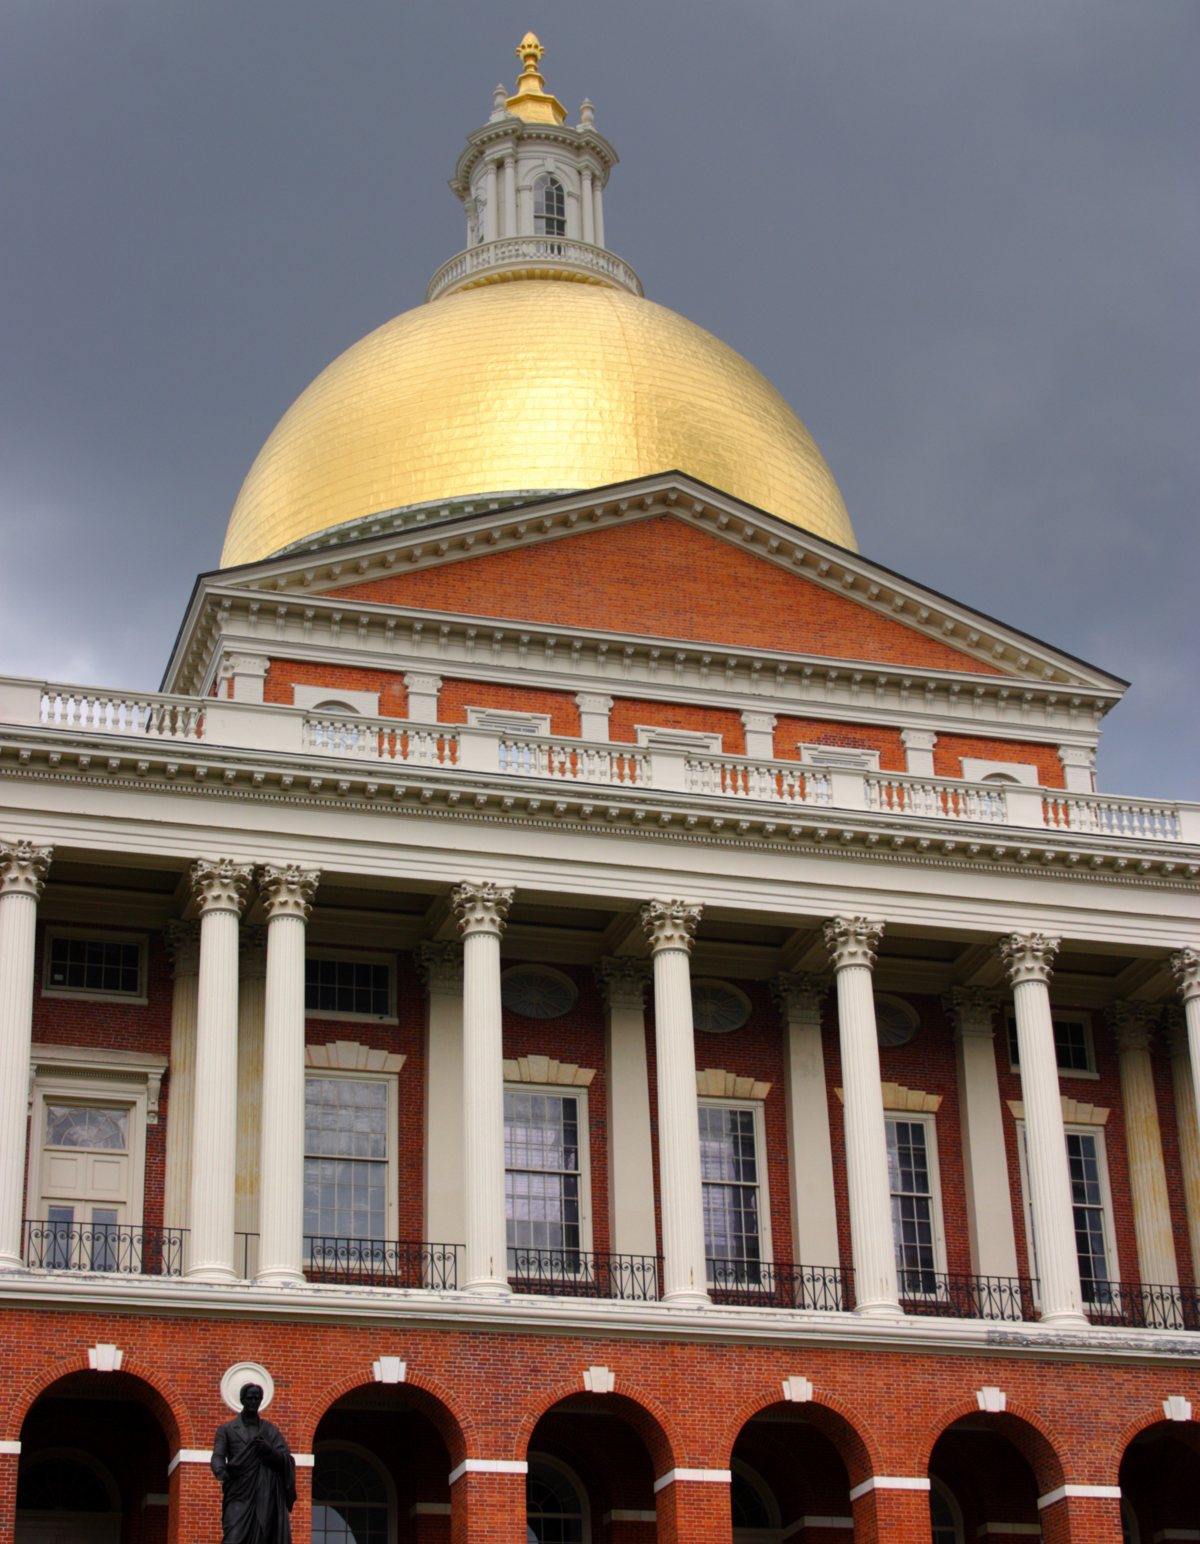 State House photo via Shutterstock